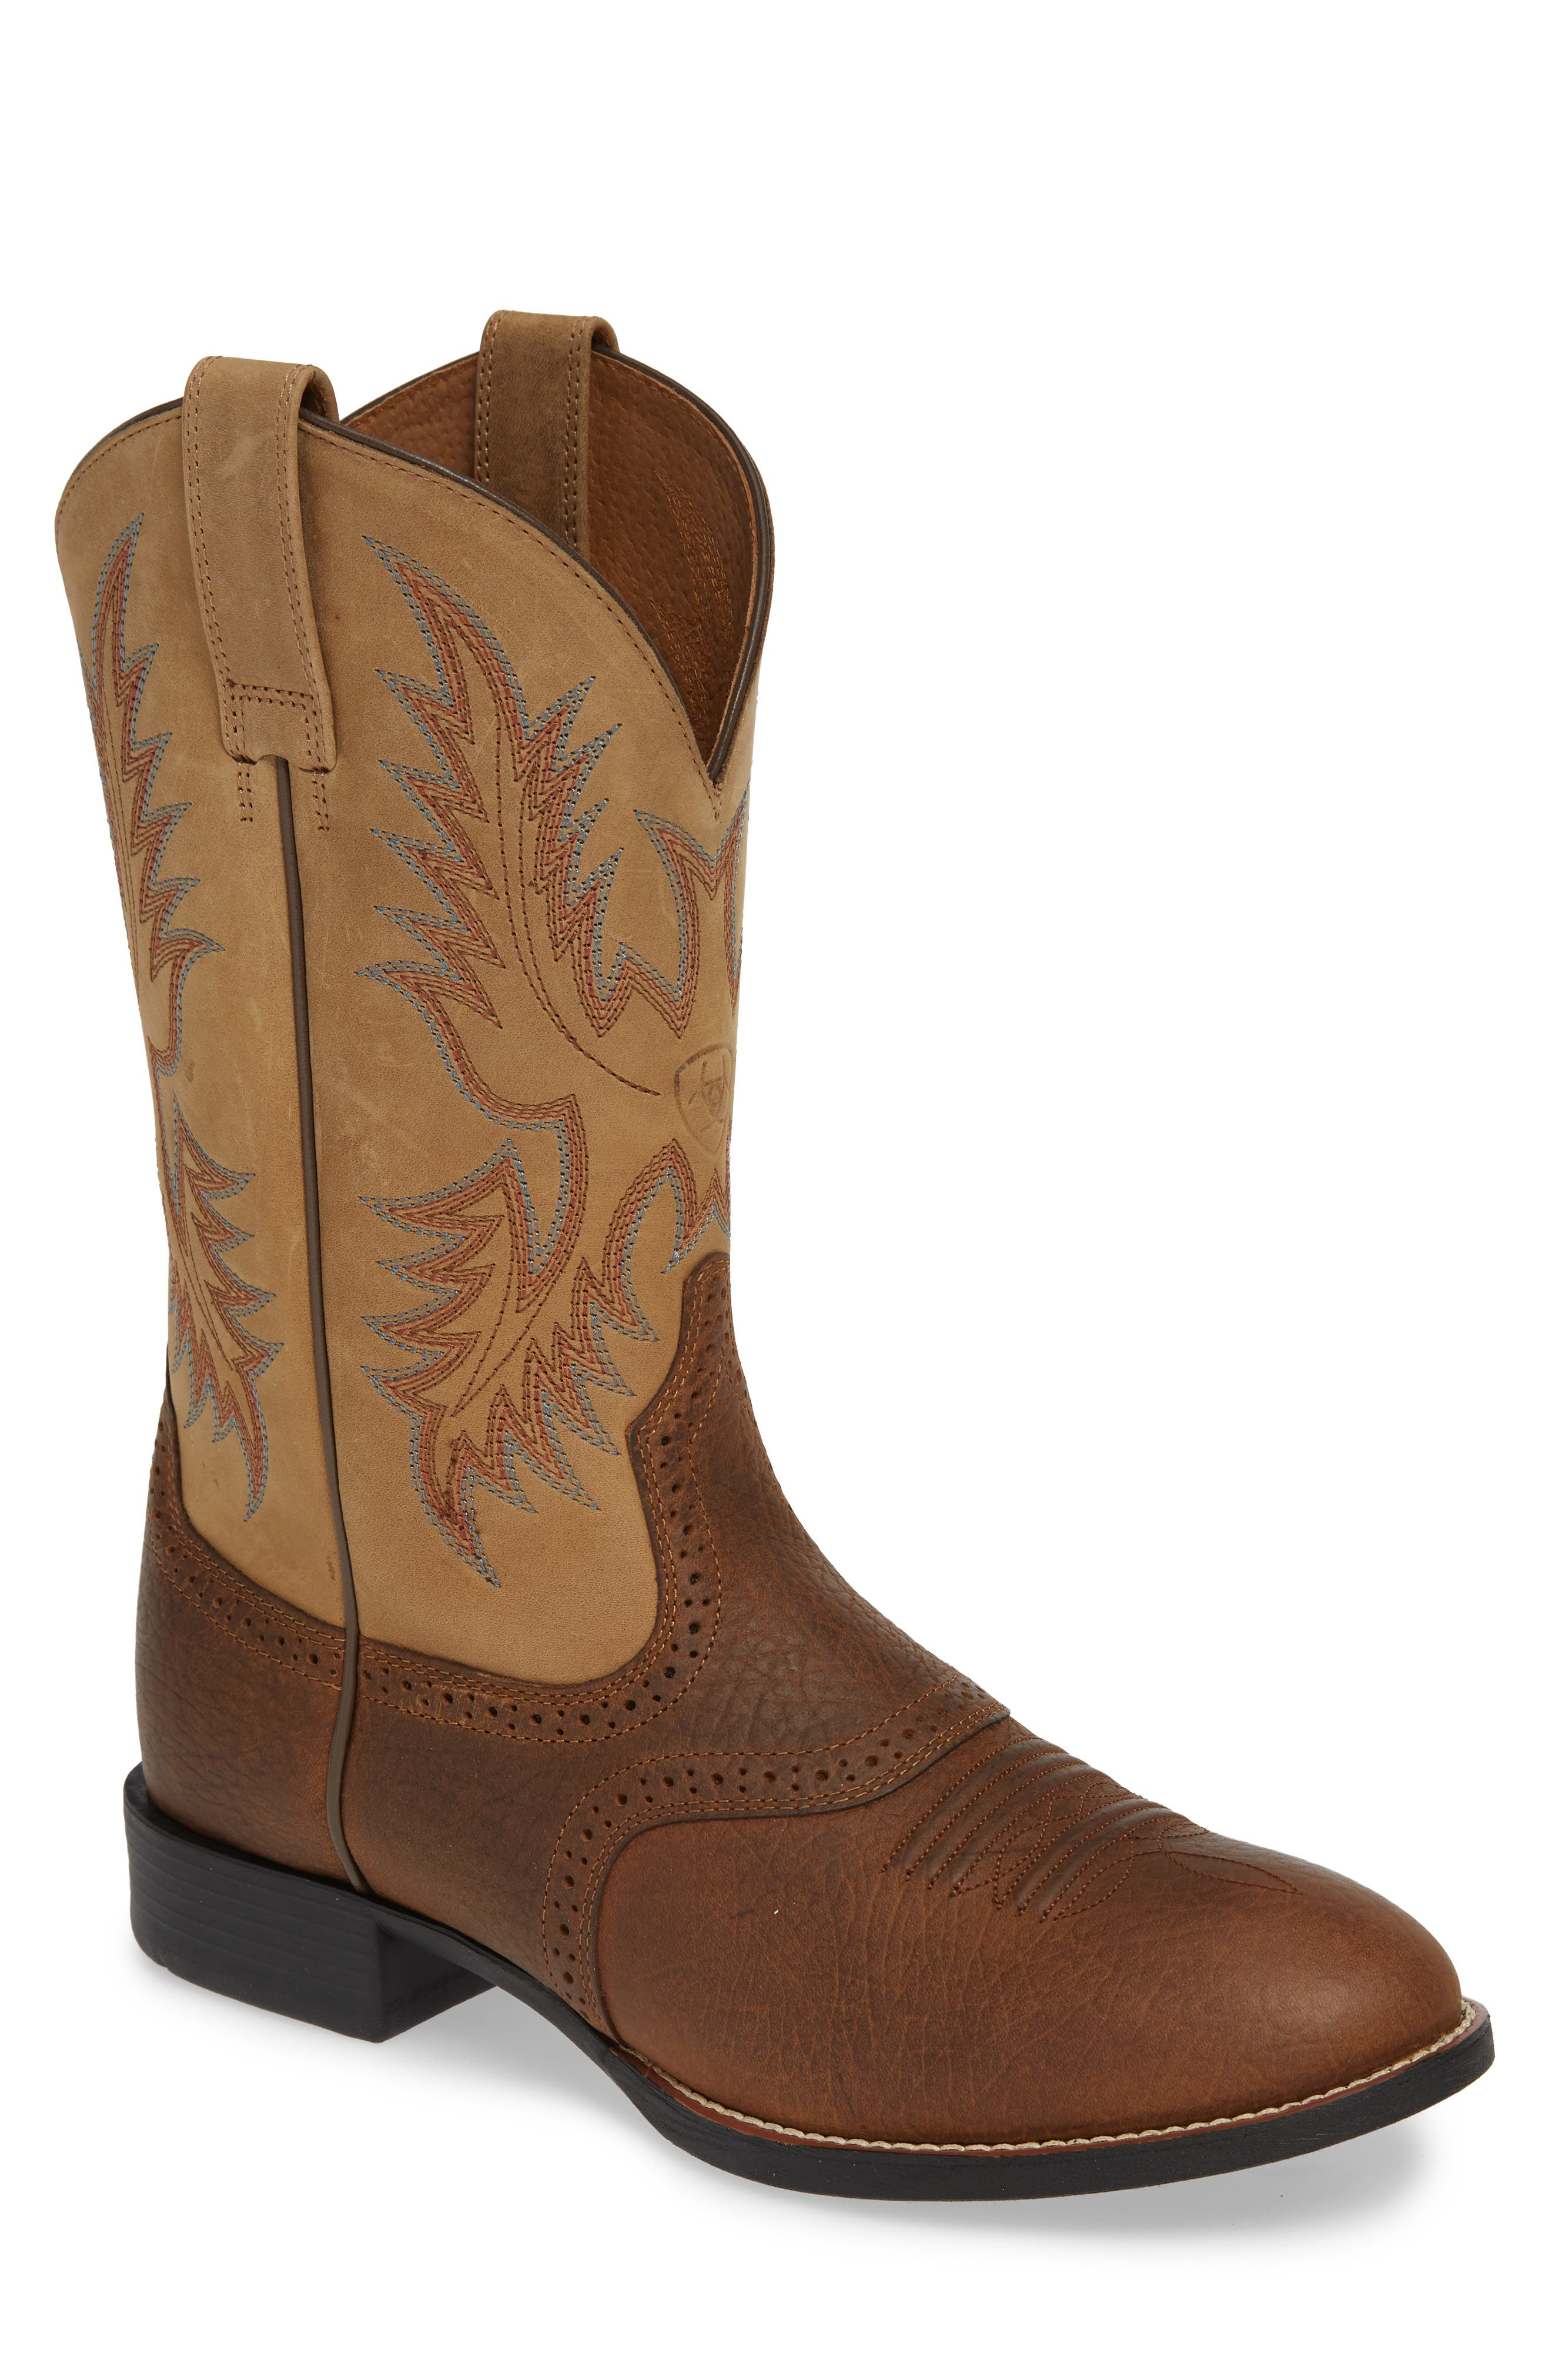 ARIAT, Heritage Stockman Cowboy Boot, Main thumbnail 1, color, BROWN/ BEIGE LEATHER